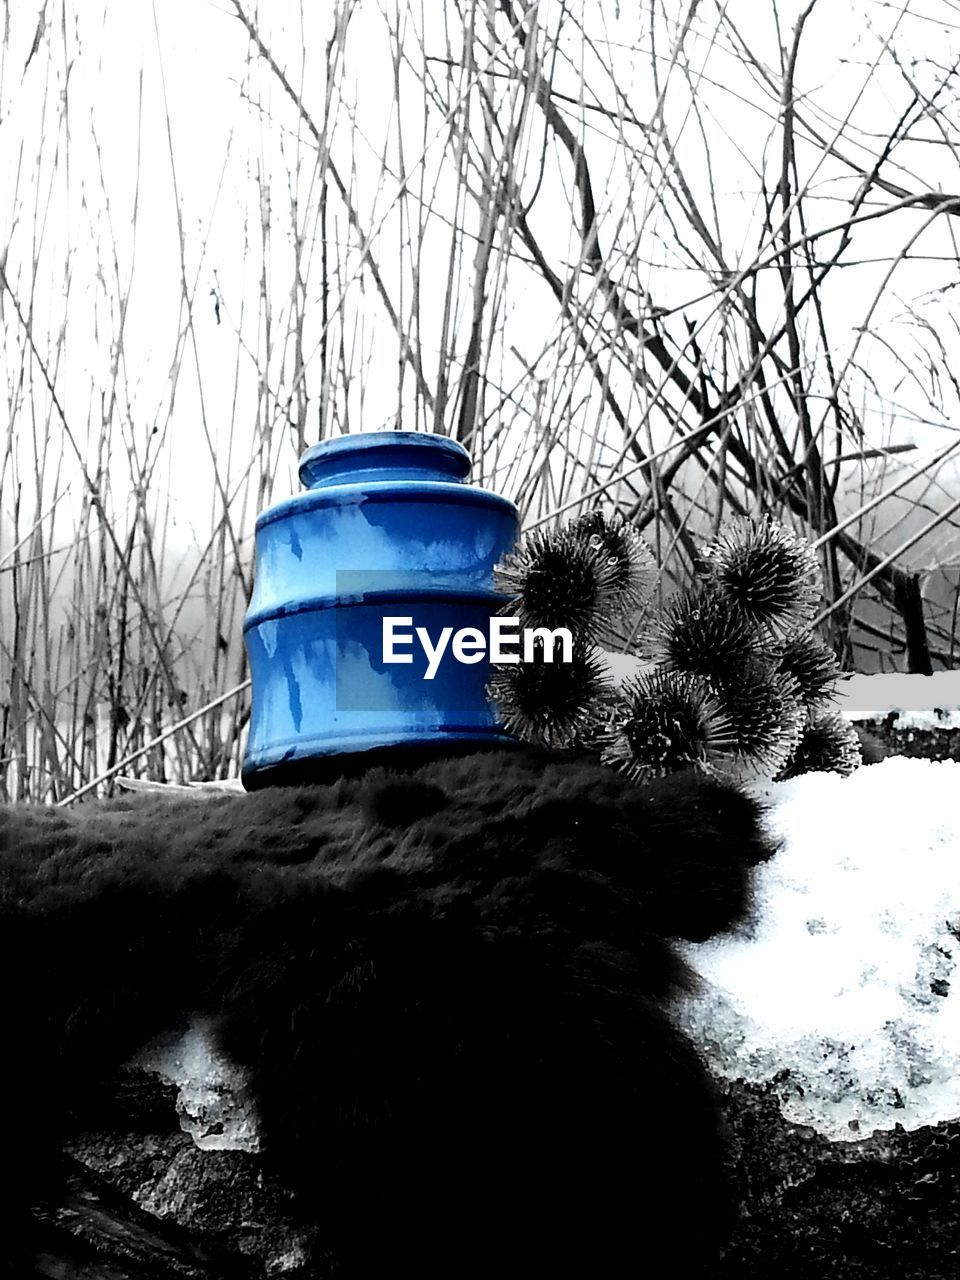 Digitally manipulated image of blue vase and dry thistle in winter